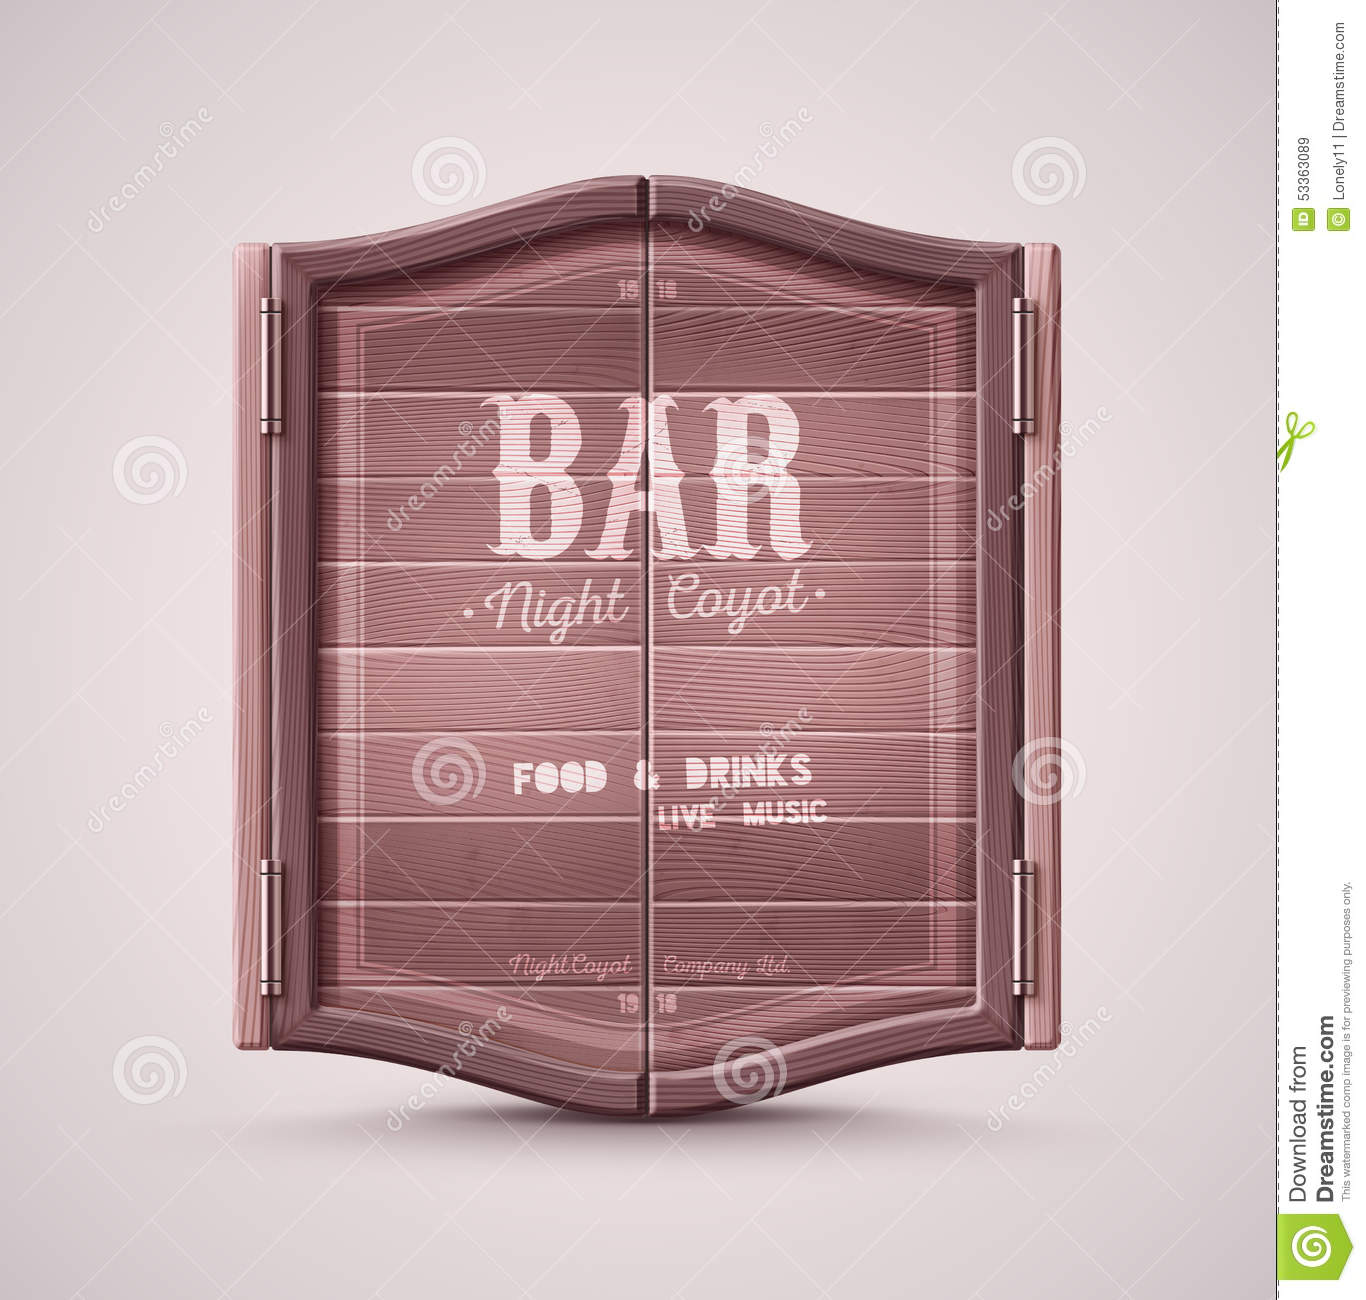 Bar Doors Stock Photo - Image: 53363089